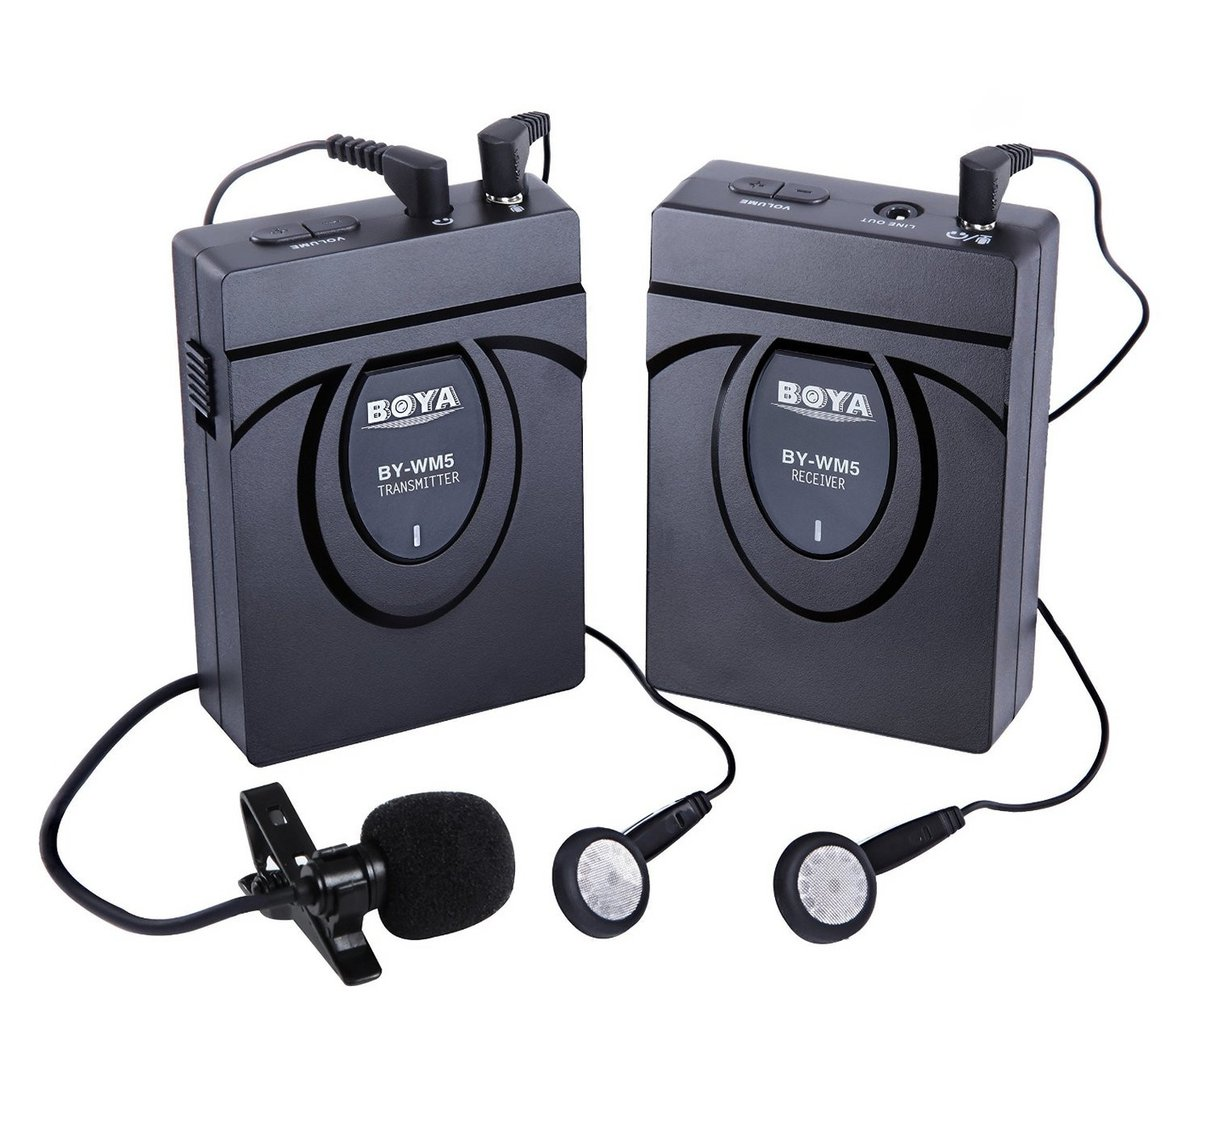 BOYA BY-WM5 DSLR Camera Wireless Lavalier Microphone Recorder System for Canon 6D 600D 5D2 5D3 Nikon D800 Sony DV Camcord<br>